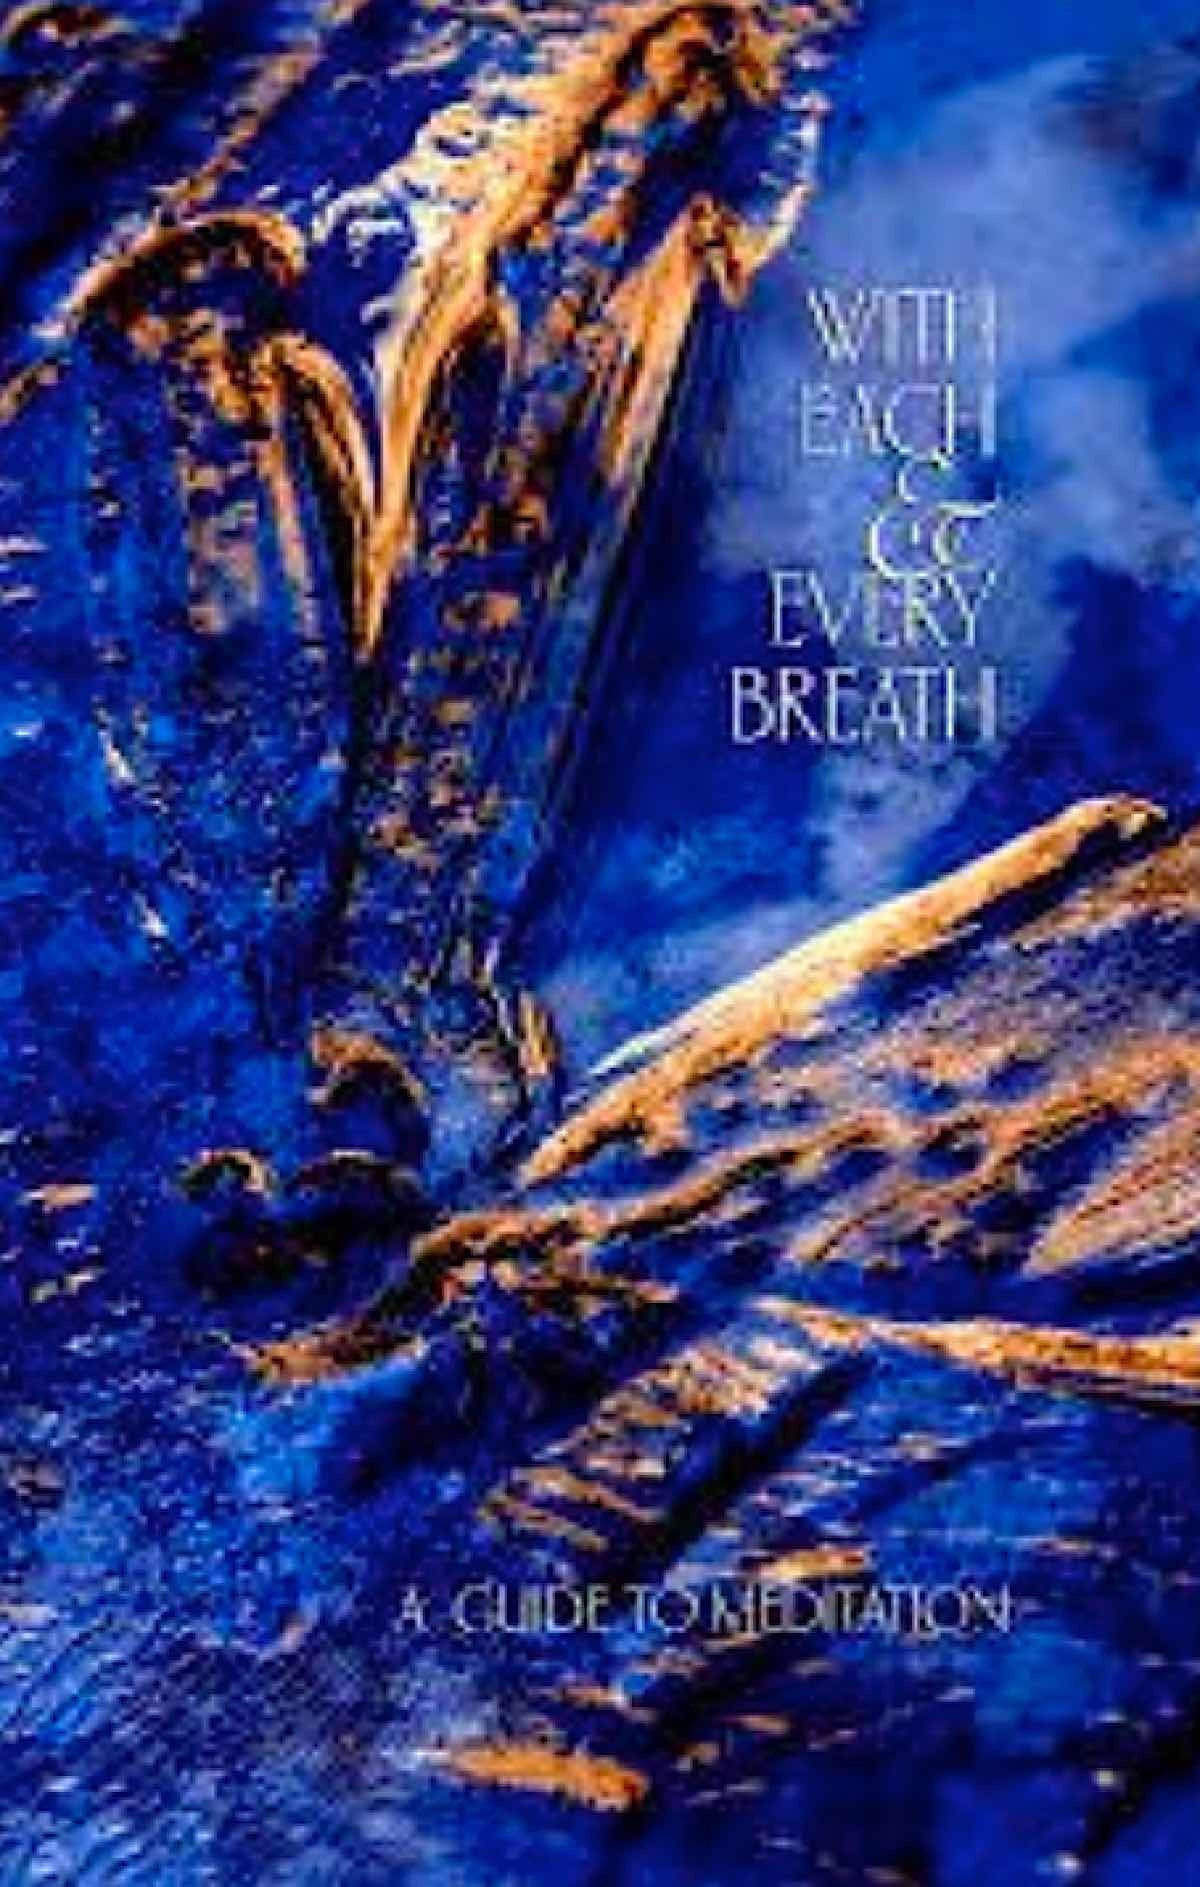 Buddha Weekly With Each Every Breath A Guide to Meditation Buddhism